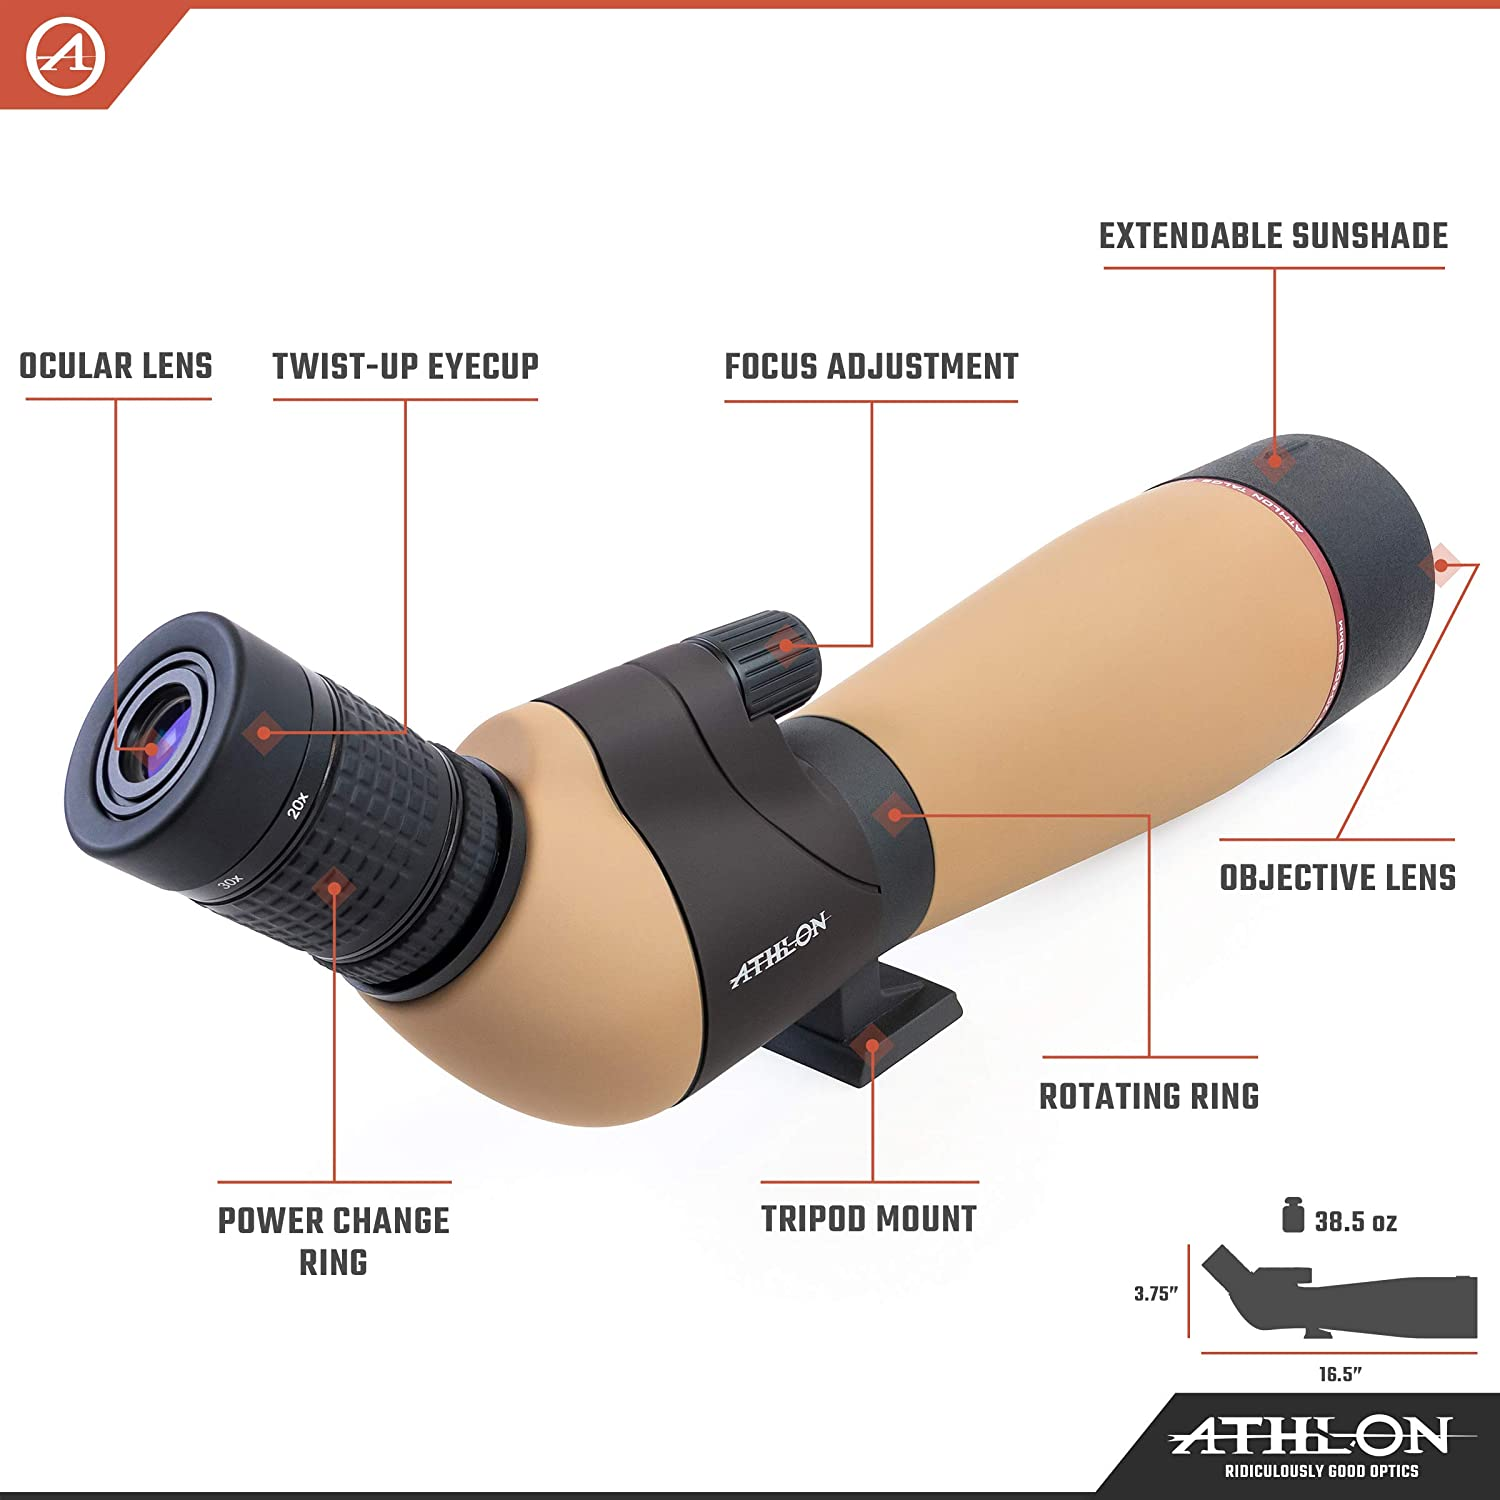 Top 9 Best Spotting Scopes For Wildlife Viewing [Buying Guide - 2021] 3